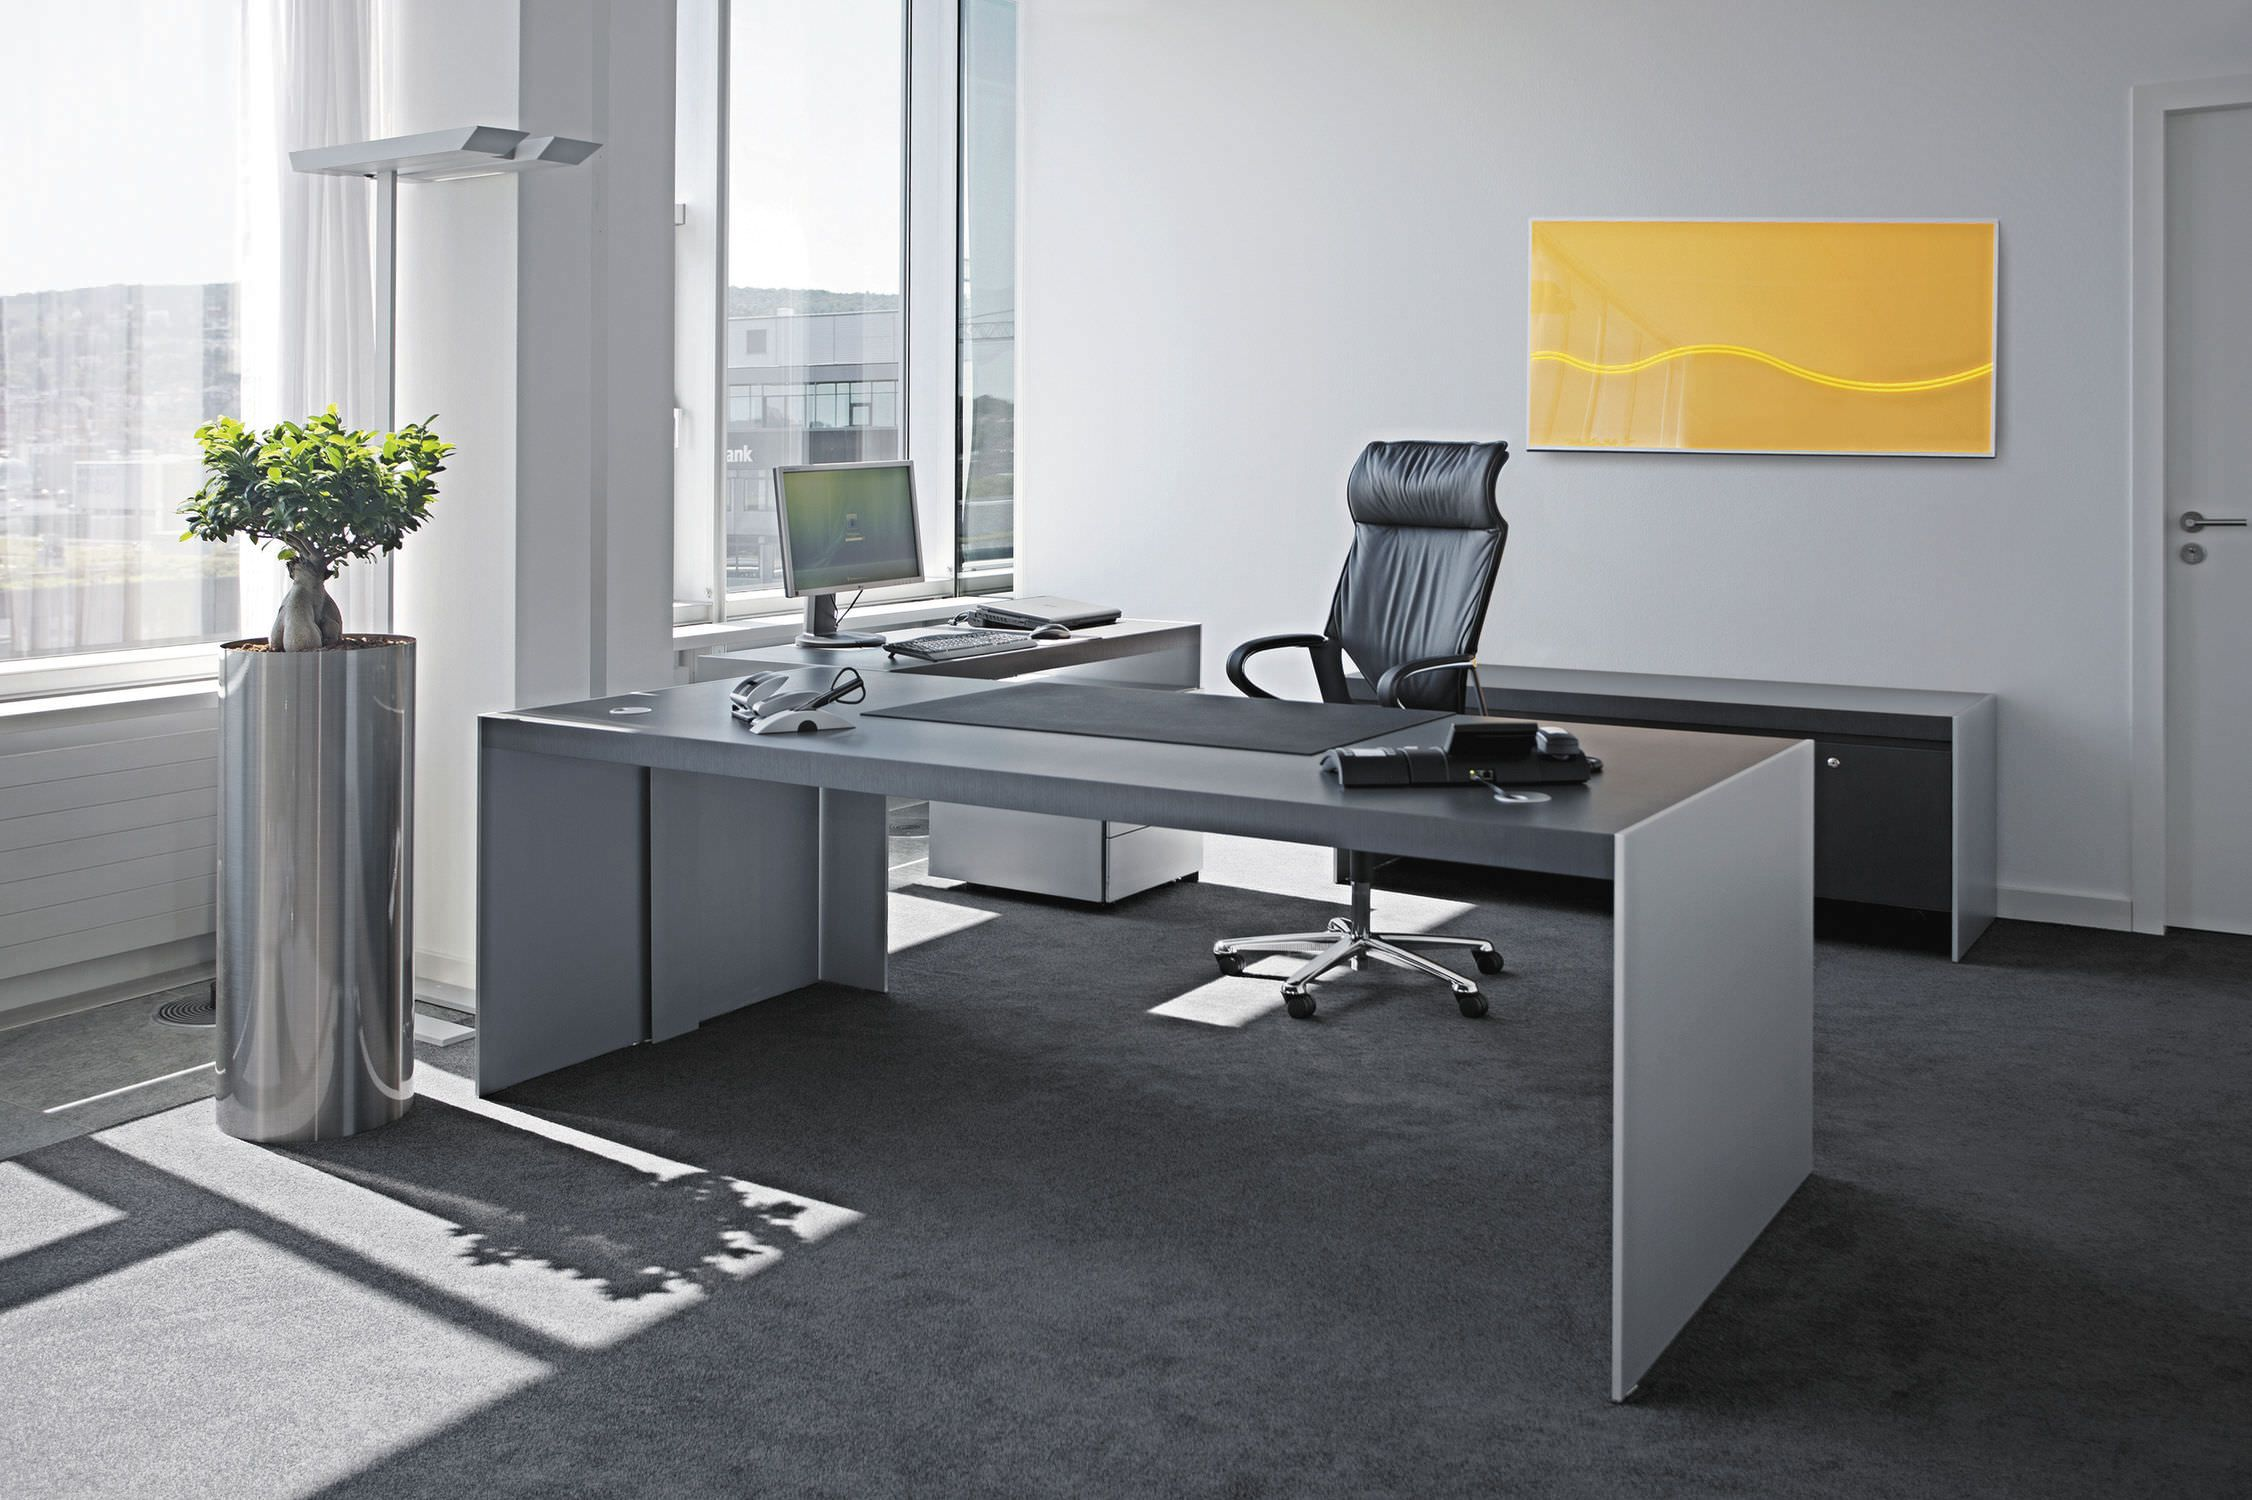 The officedesks should be in SYNCHRONIZATION with the dcor and